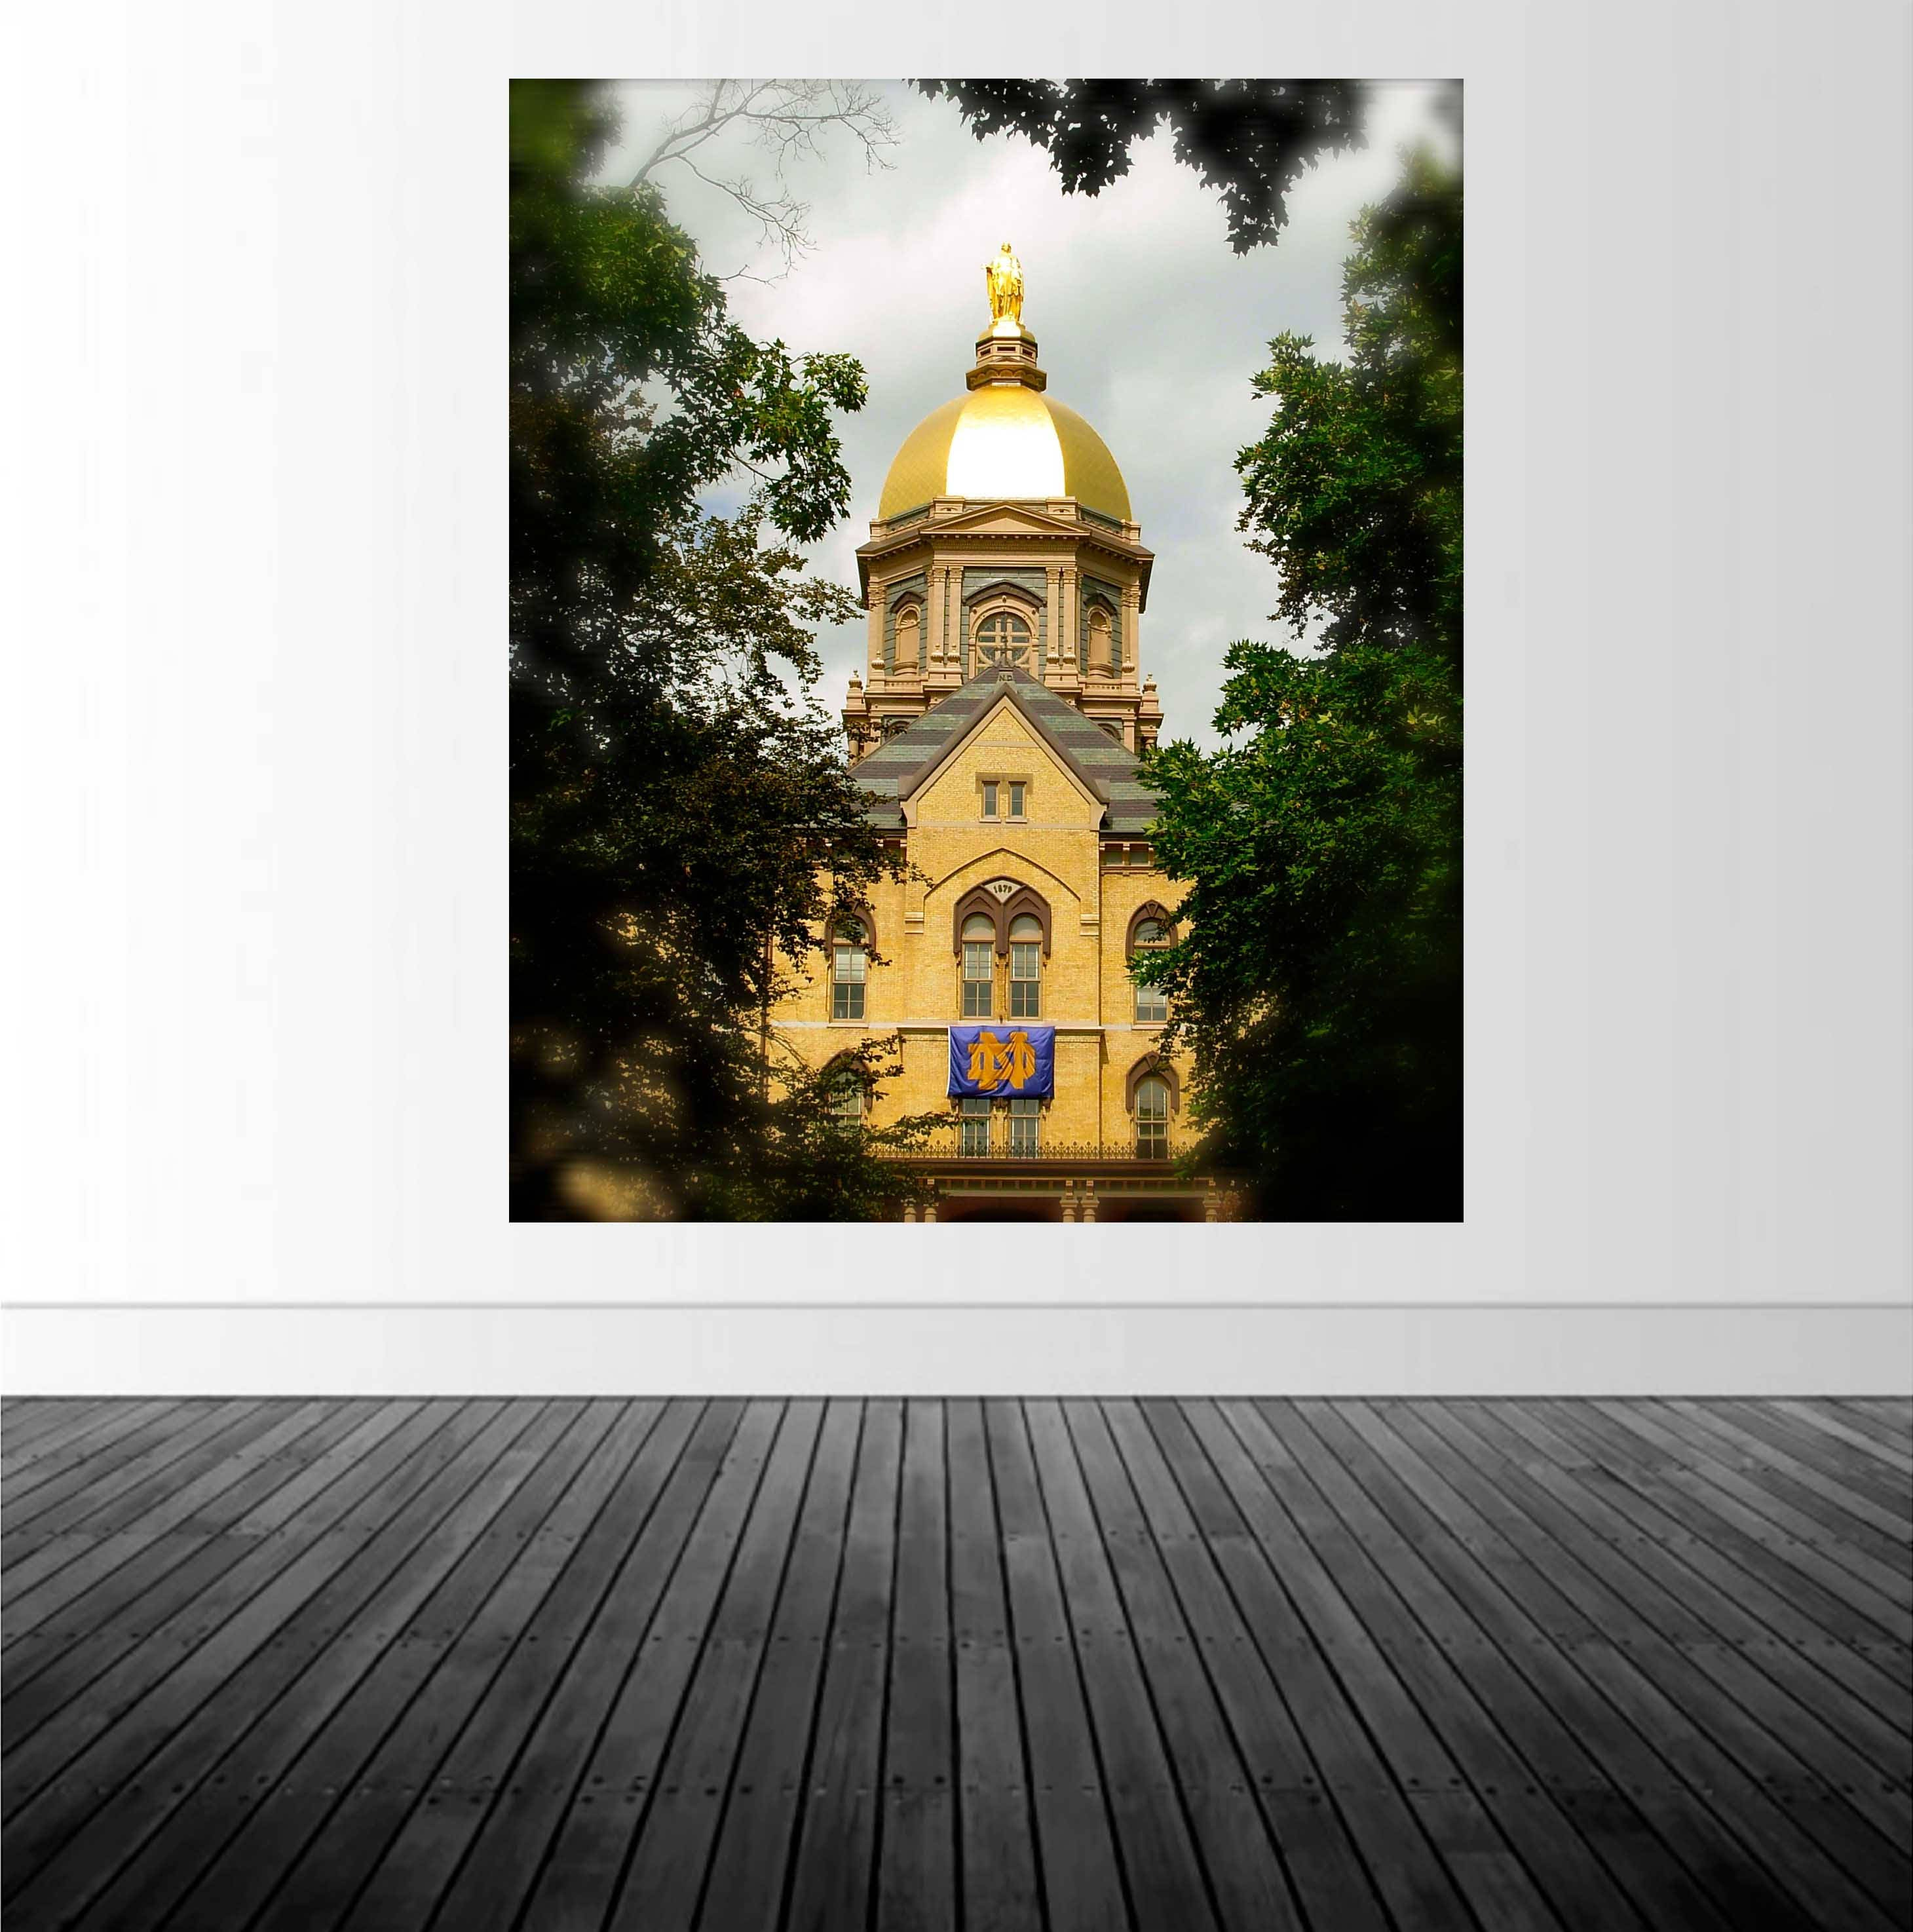 Notre Dame Home Decor: Notre Dame Decal, University, Decal, Golden Dome Decal